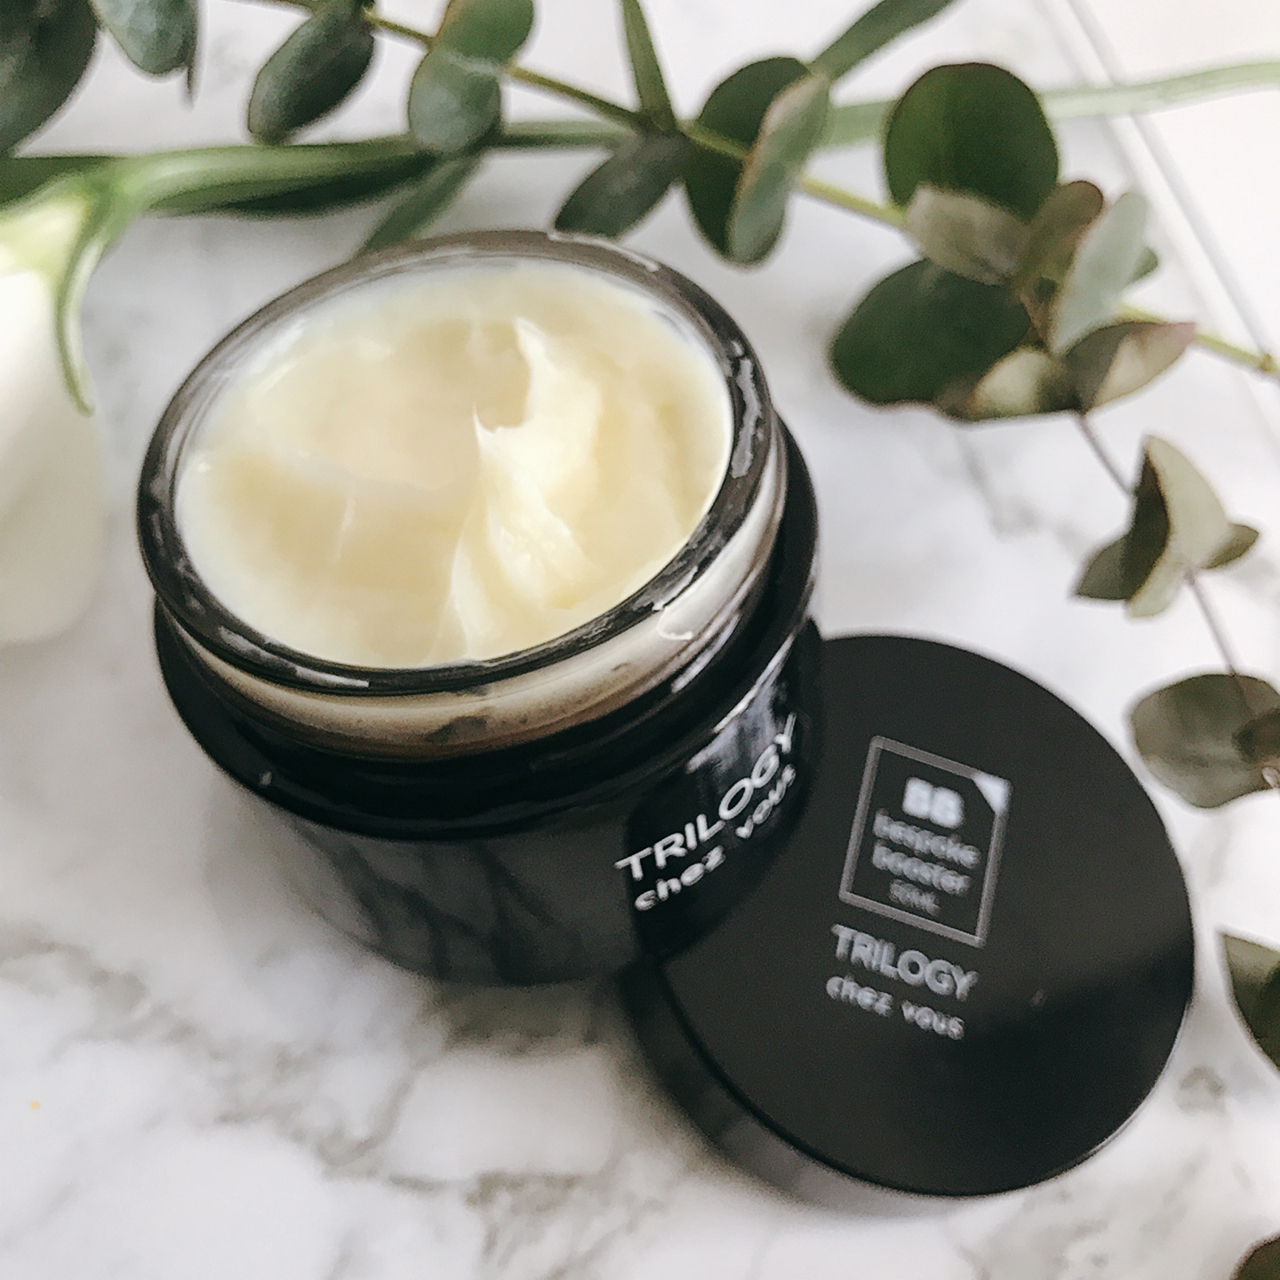 Chez Vous Trilogy Bespoke Booster - Soothe & Smooth